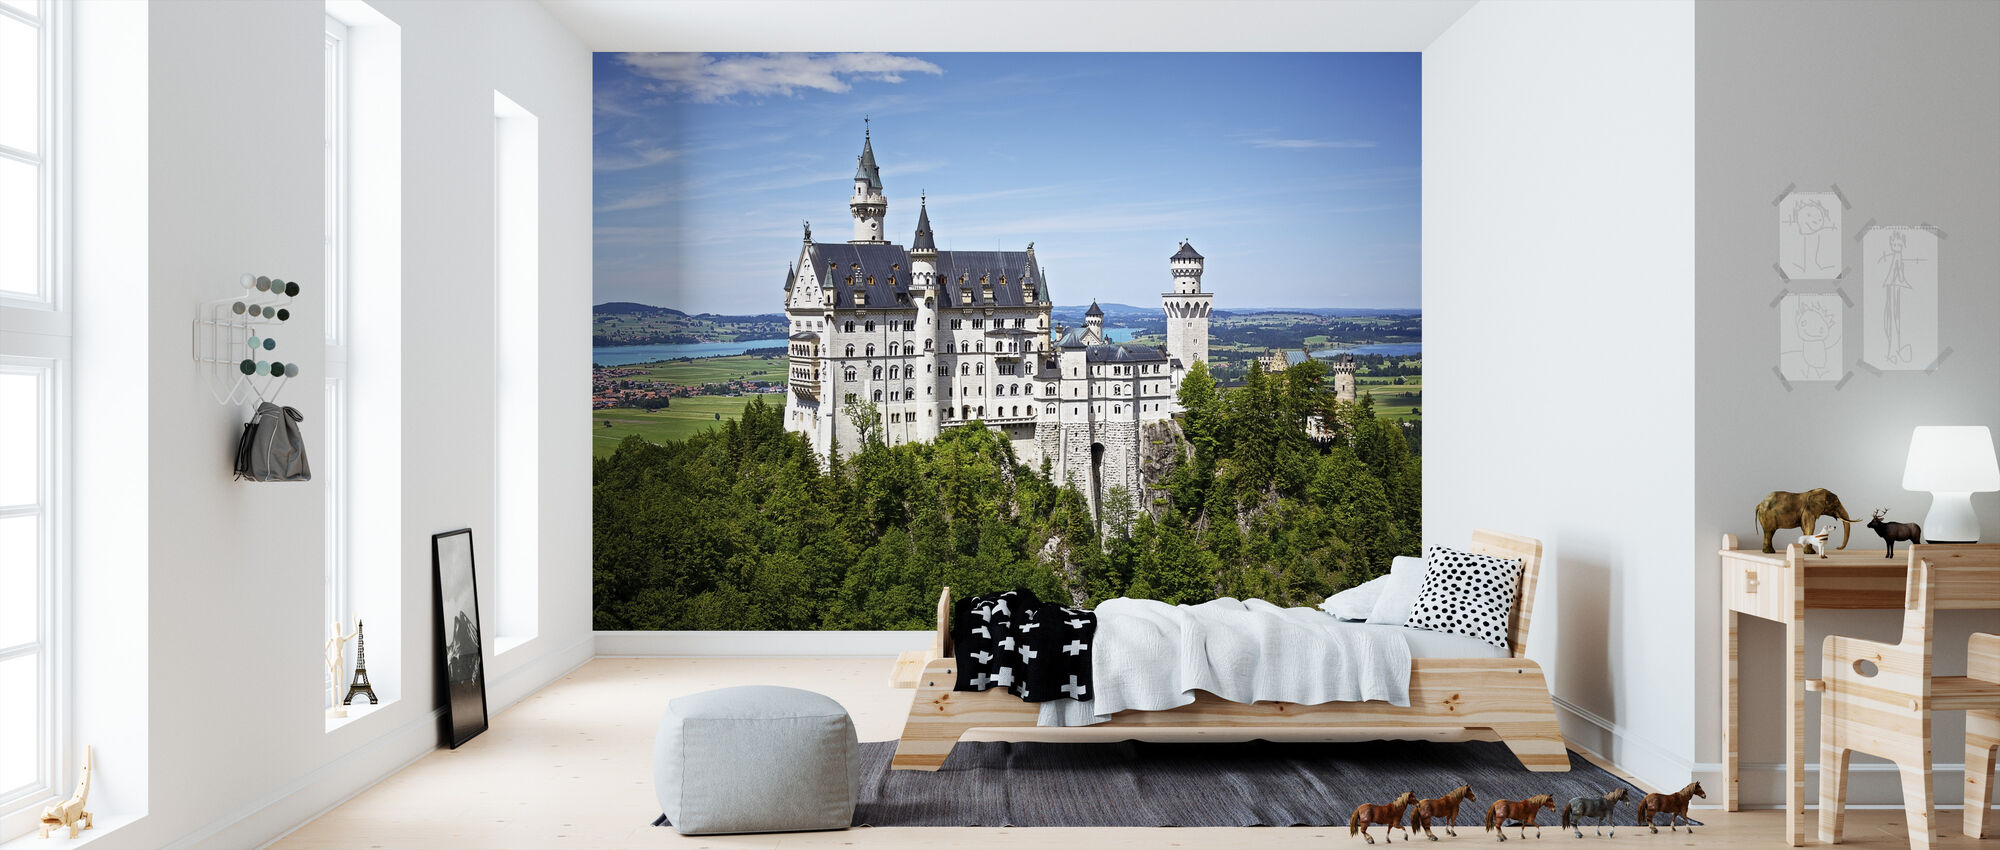 Neuschwanstein Disney Castle - Wallpaper - Kids Room